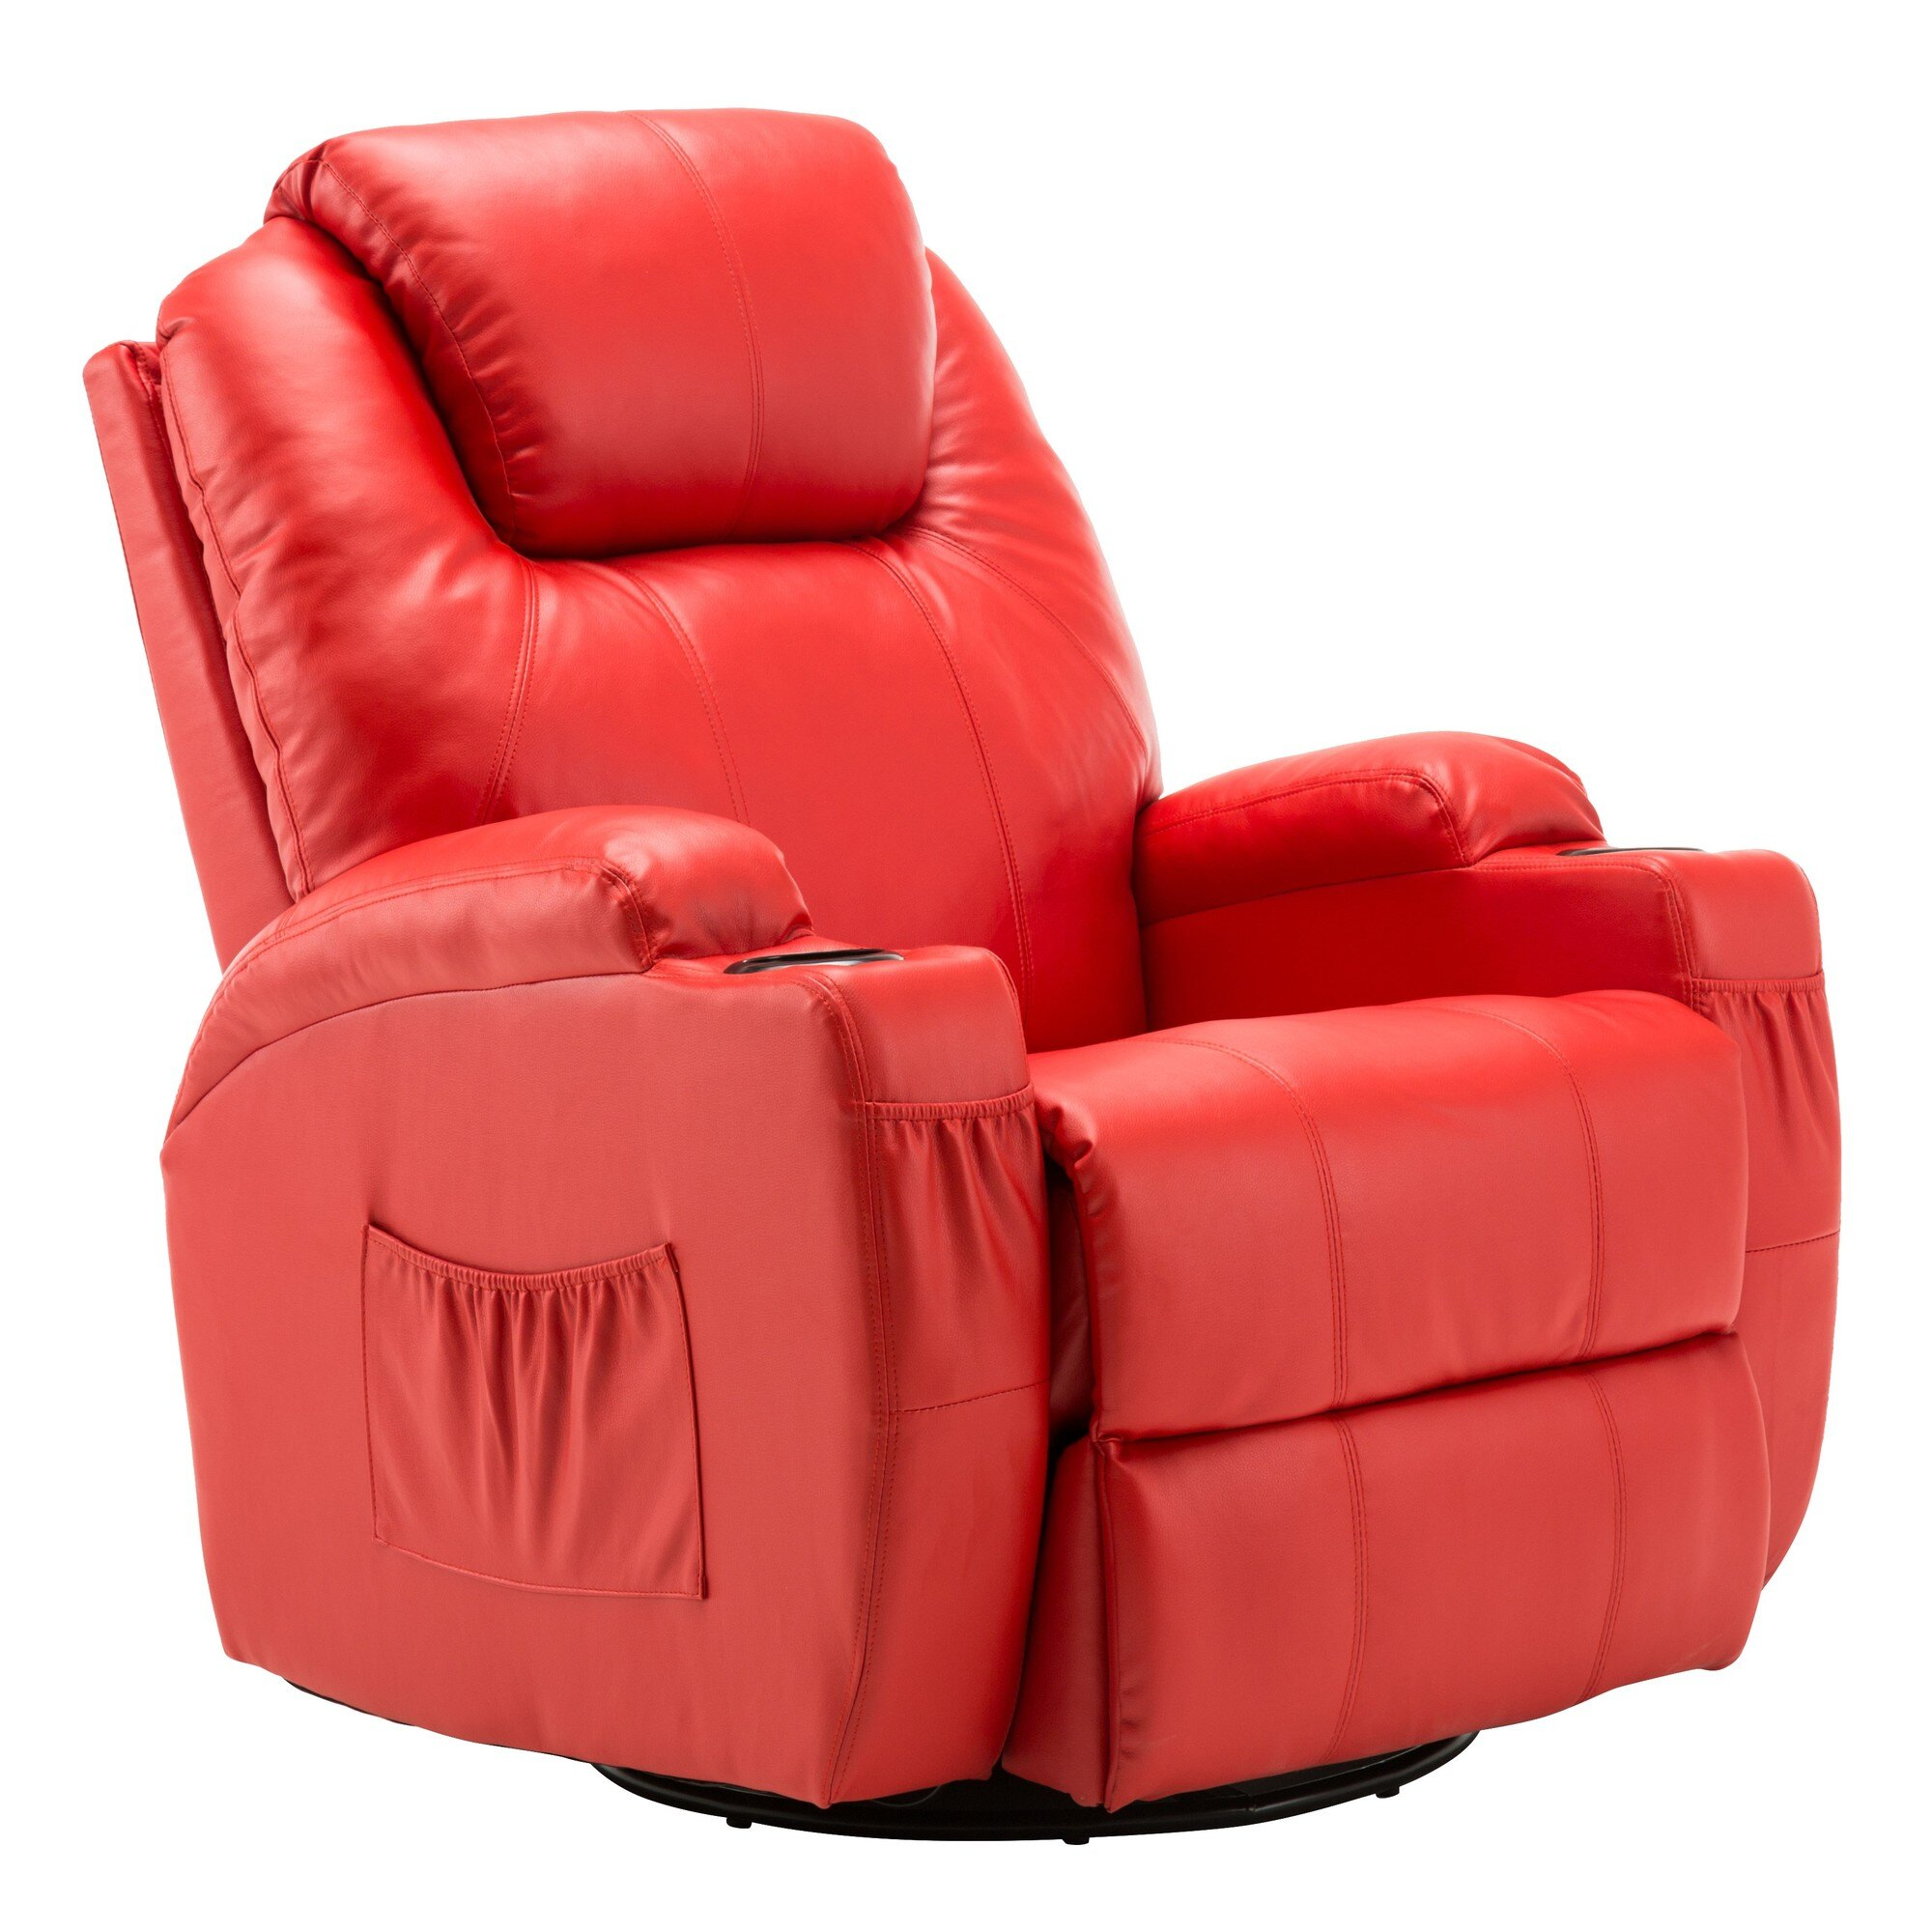 Swivel Rocker Recliner Chair Modern Massage Recliner Chair Vibrating Sofa Heated Pu Leather Ergonomic Lounge 360 Degree Swivel Rocker 8031